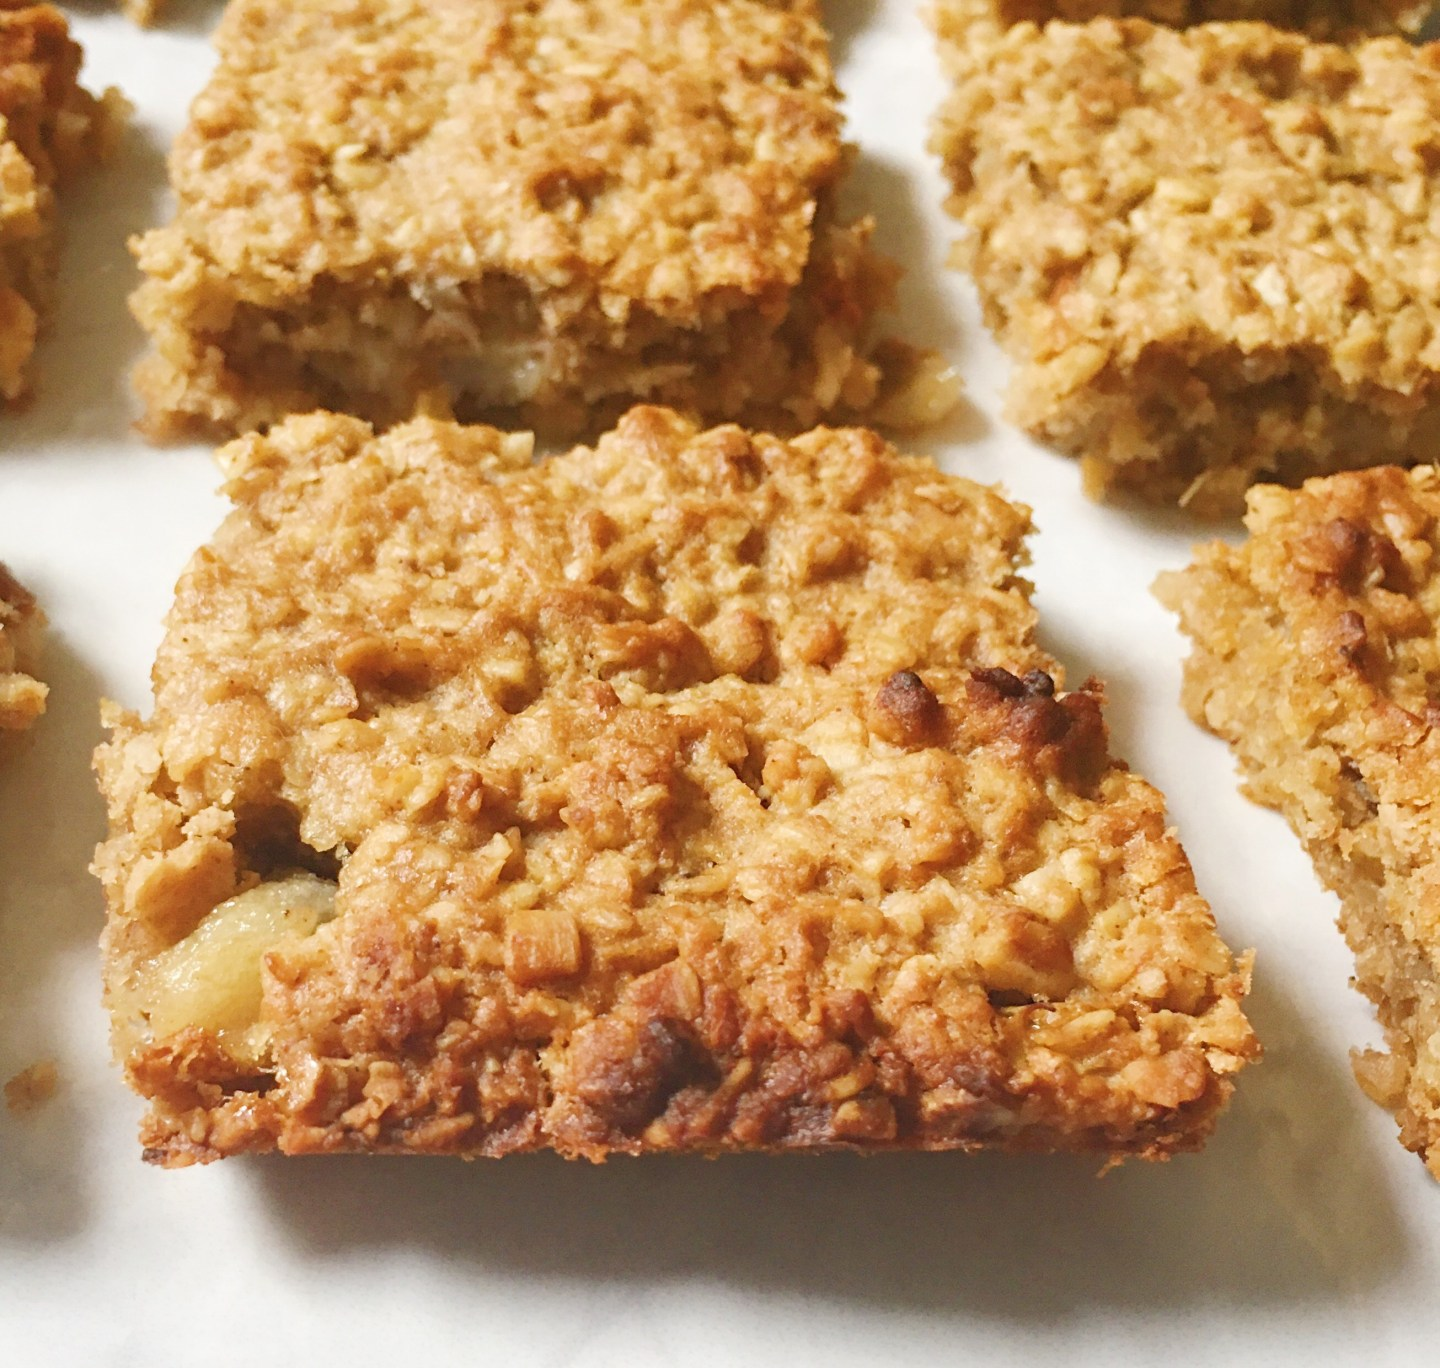 Ginger and Pear Bars - Gluten Free and Vegan